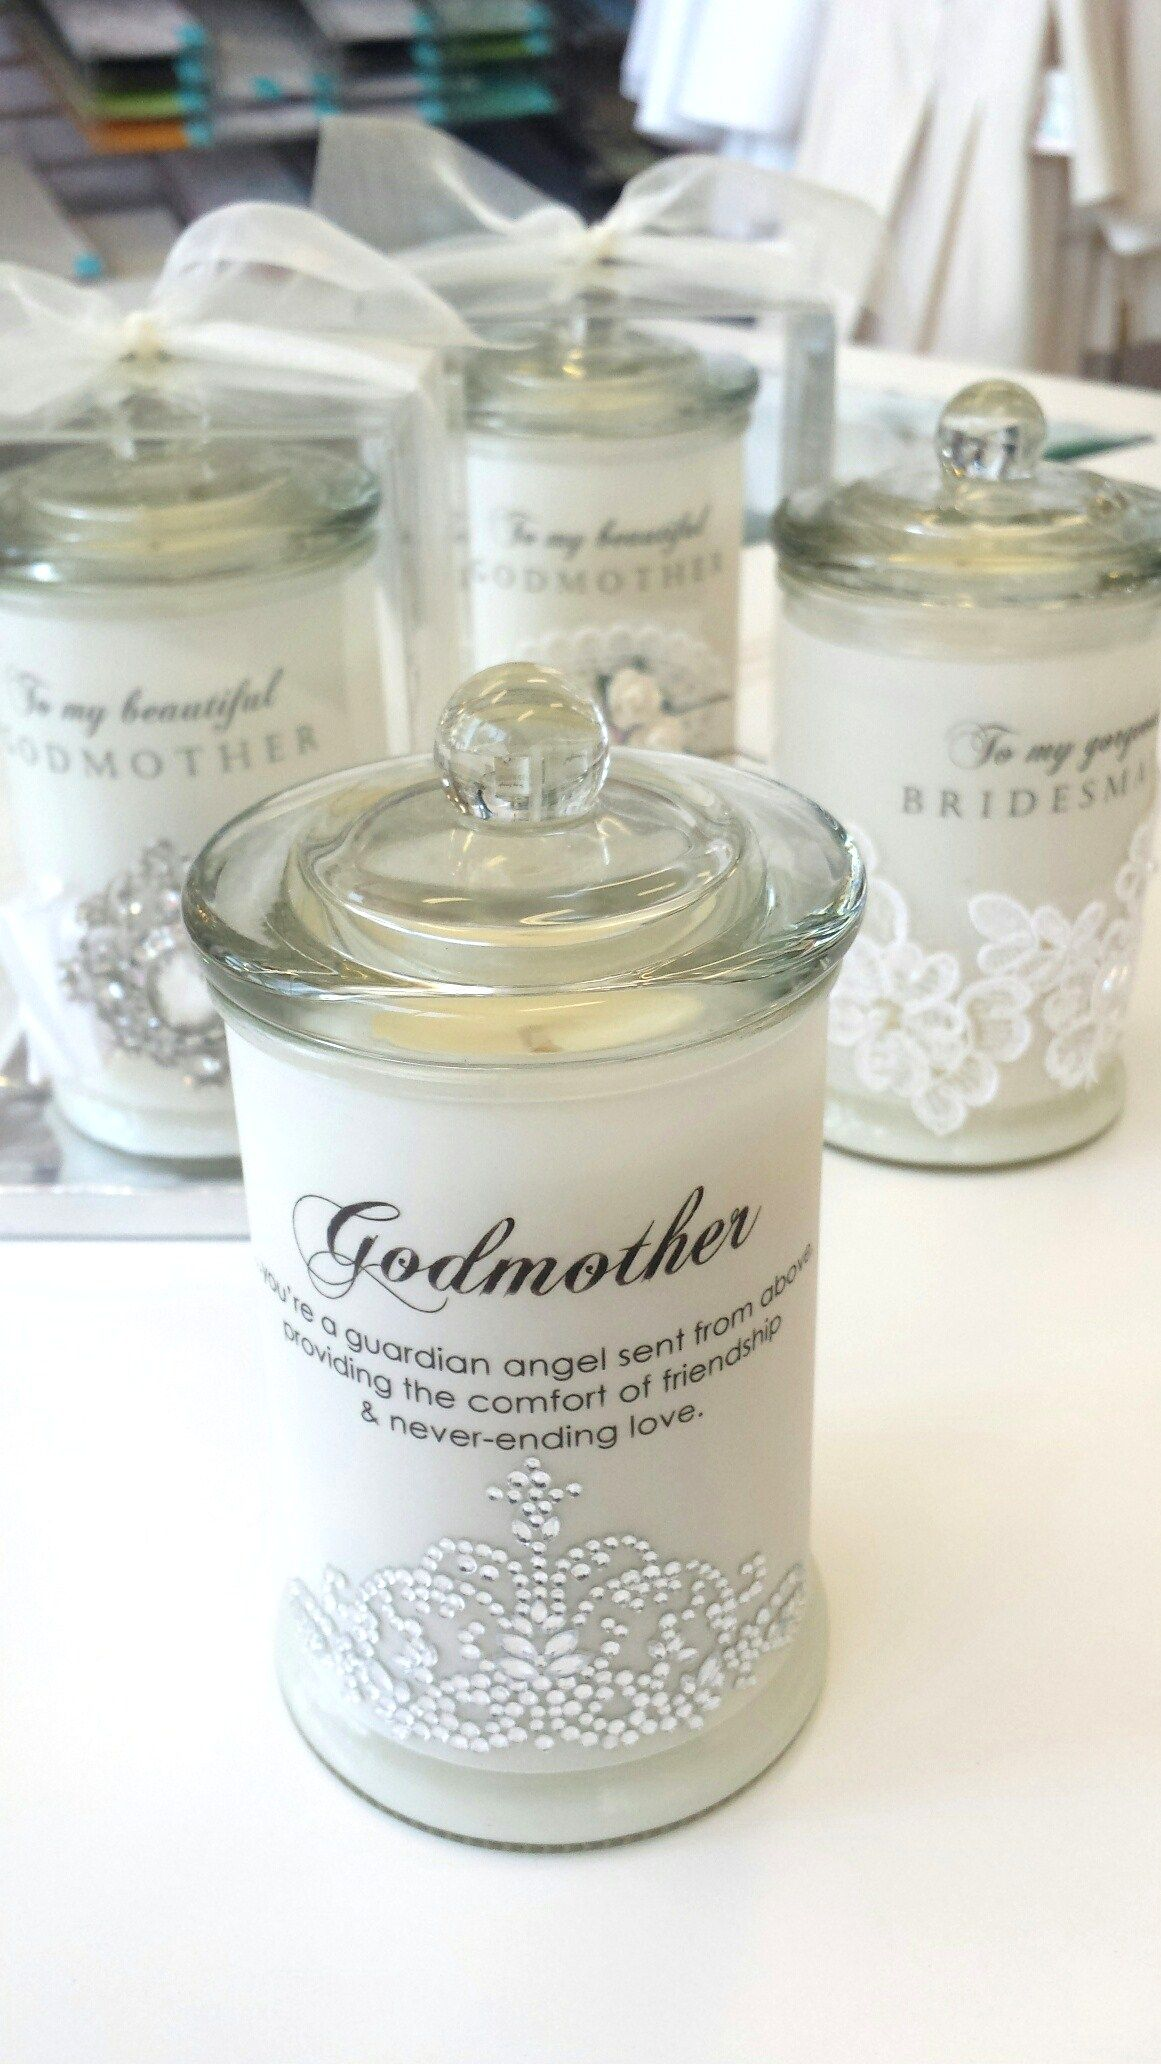 Beautifully Scented Godmother Candles Gorgeous Gifts